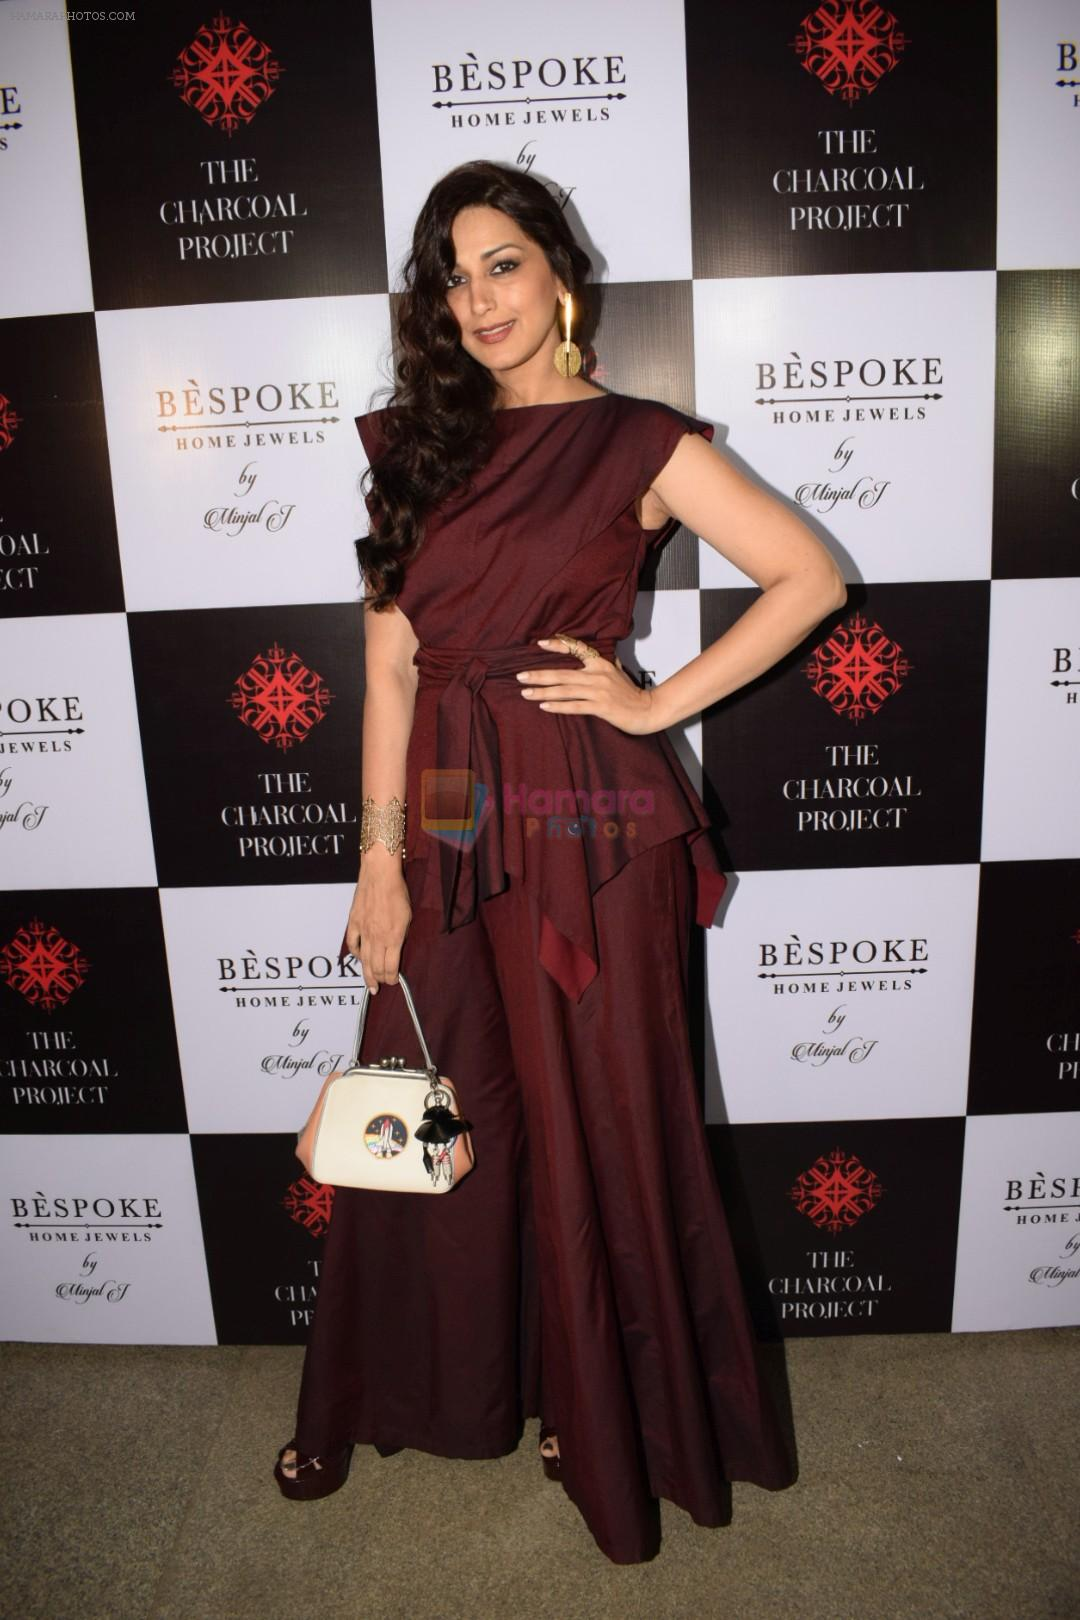 Sonali bendre At The Launch Of Bespoke Home Jewels By Minjal Jhaveri on 13th April 2018